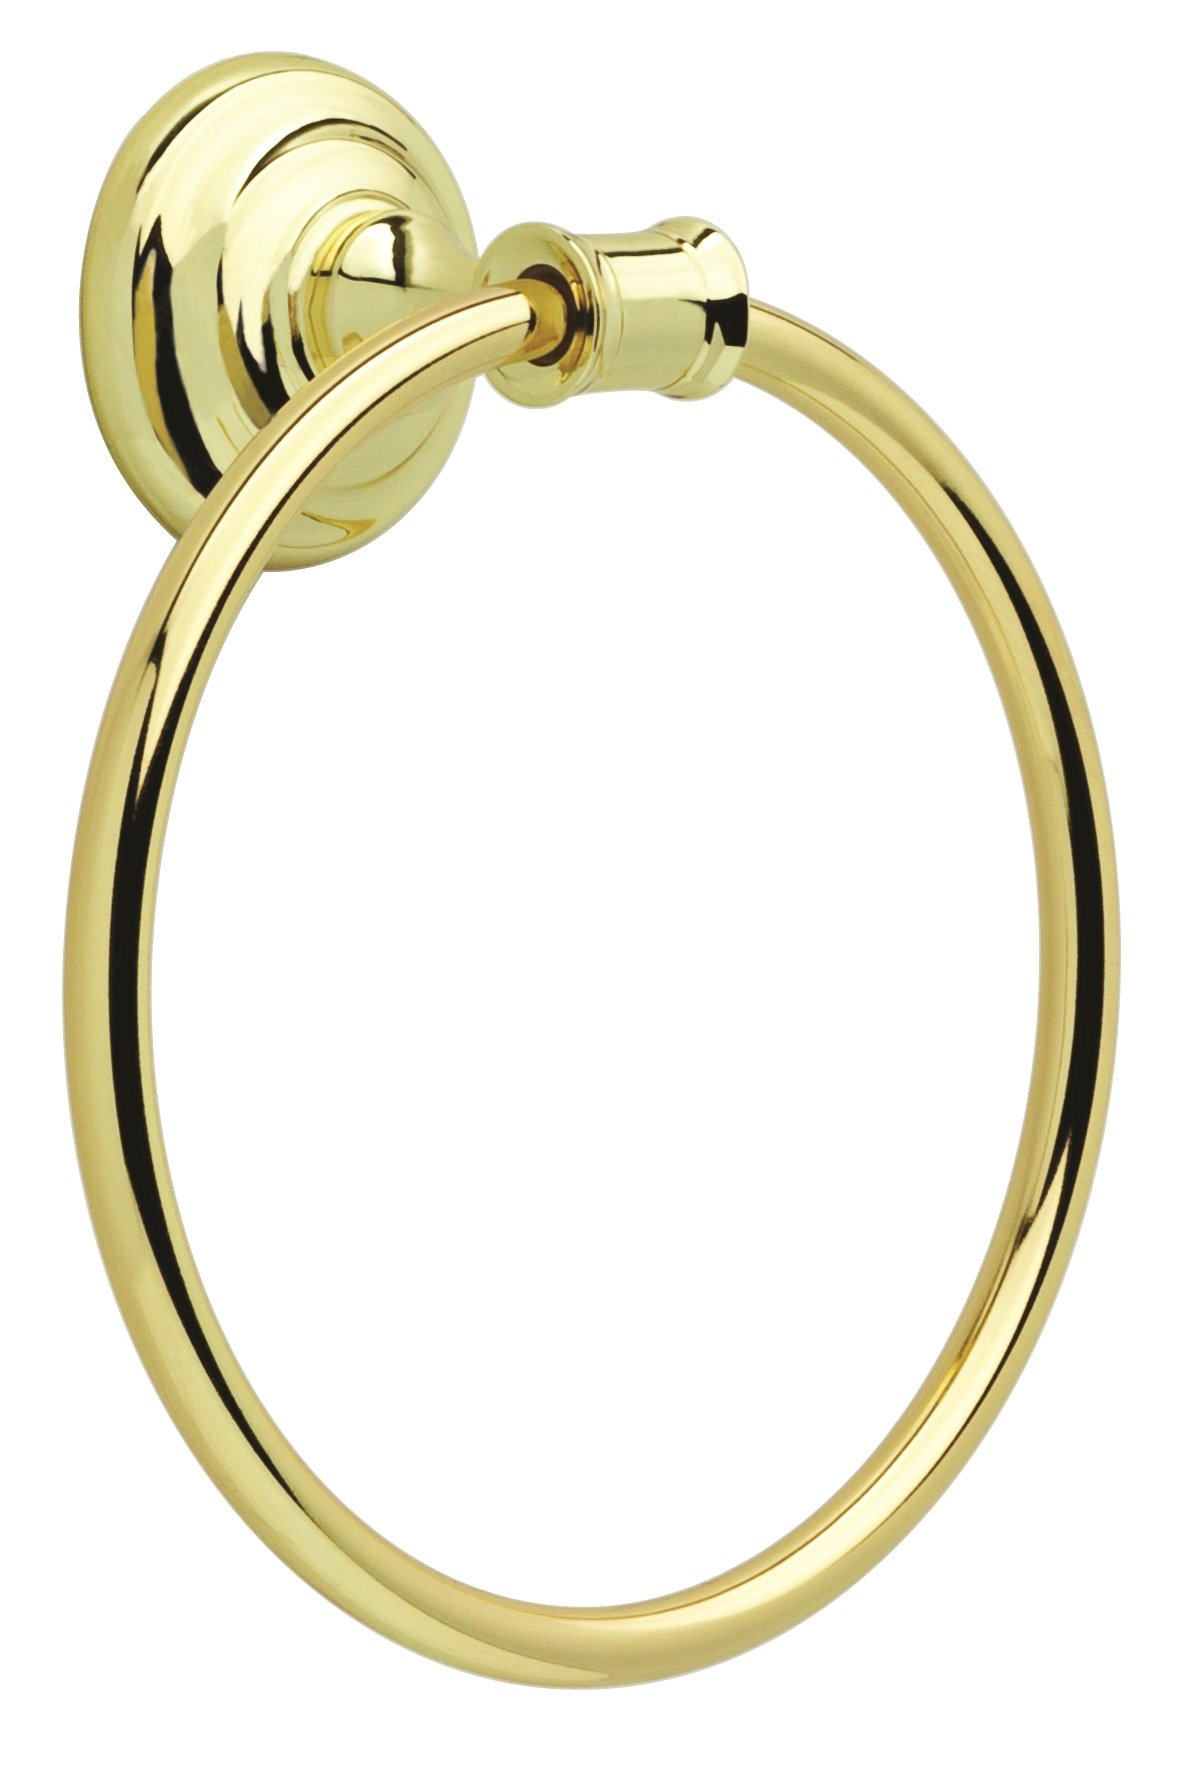 Delta Faucet OAK46-PB Oakley Bath Hardware Accessory Towel Ring, Polished Brass